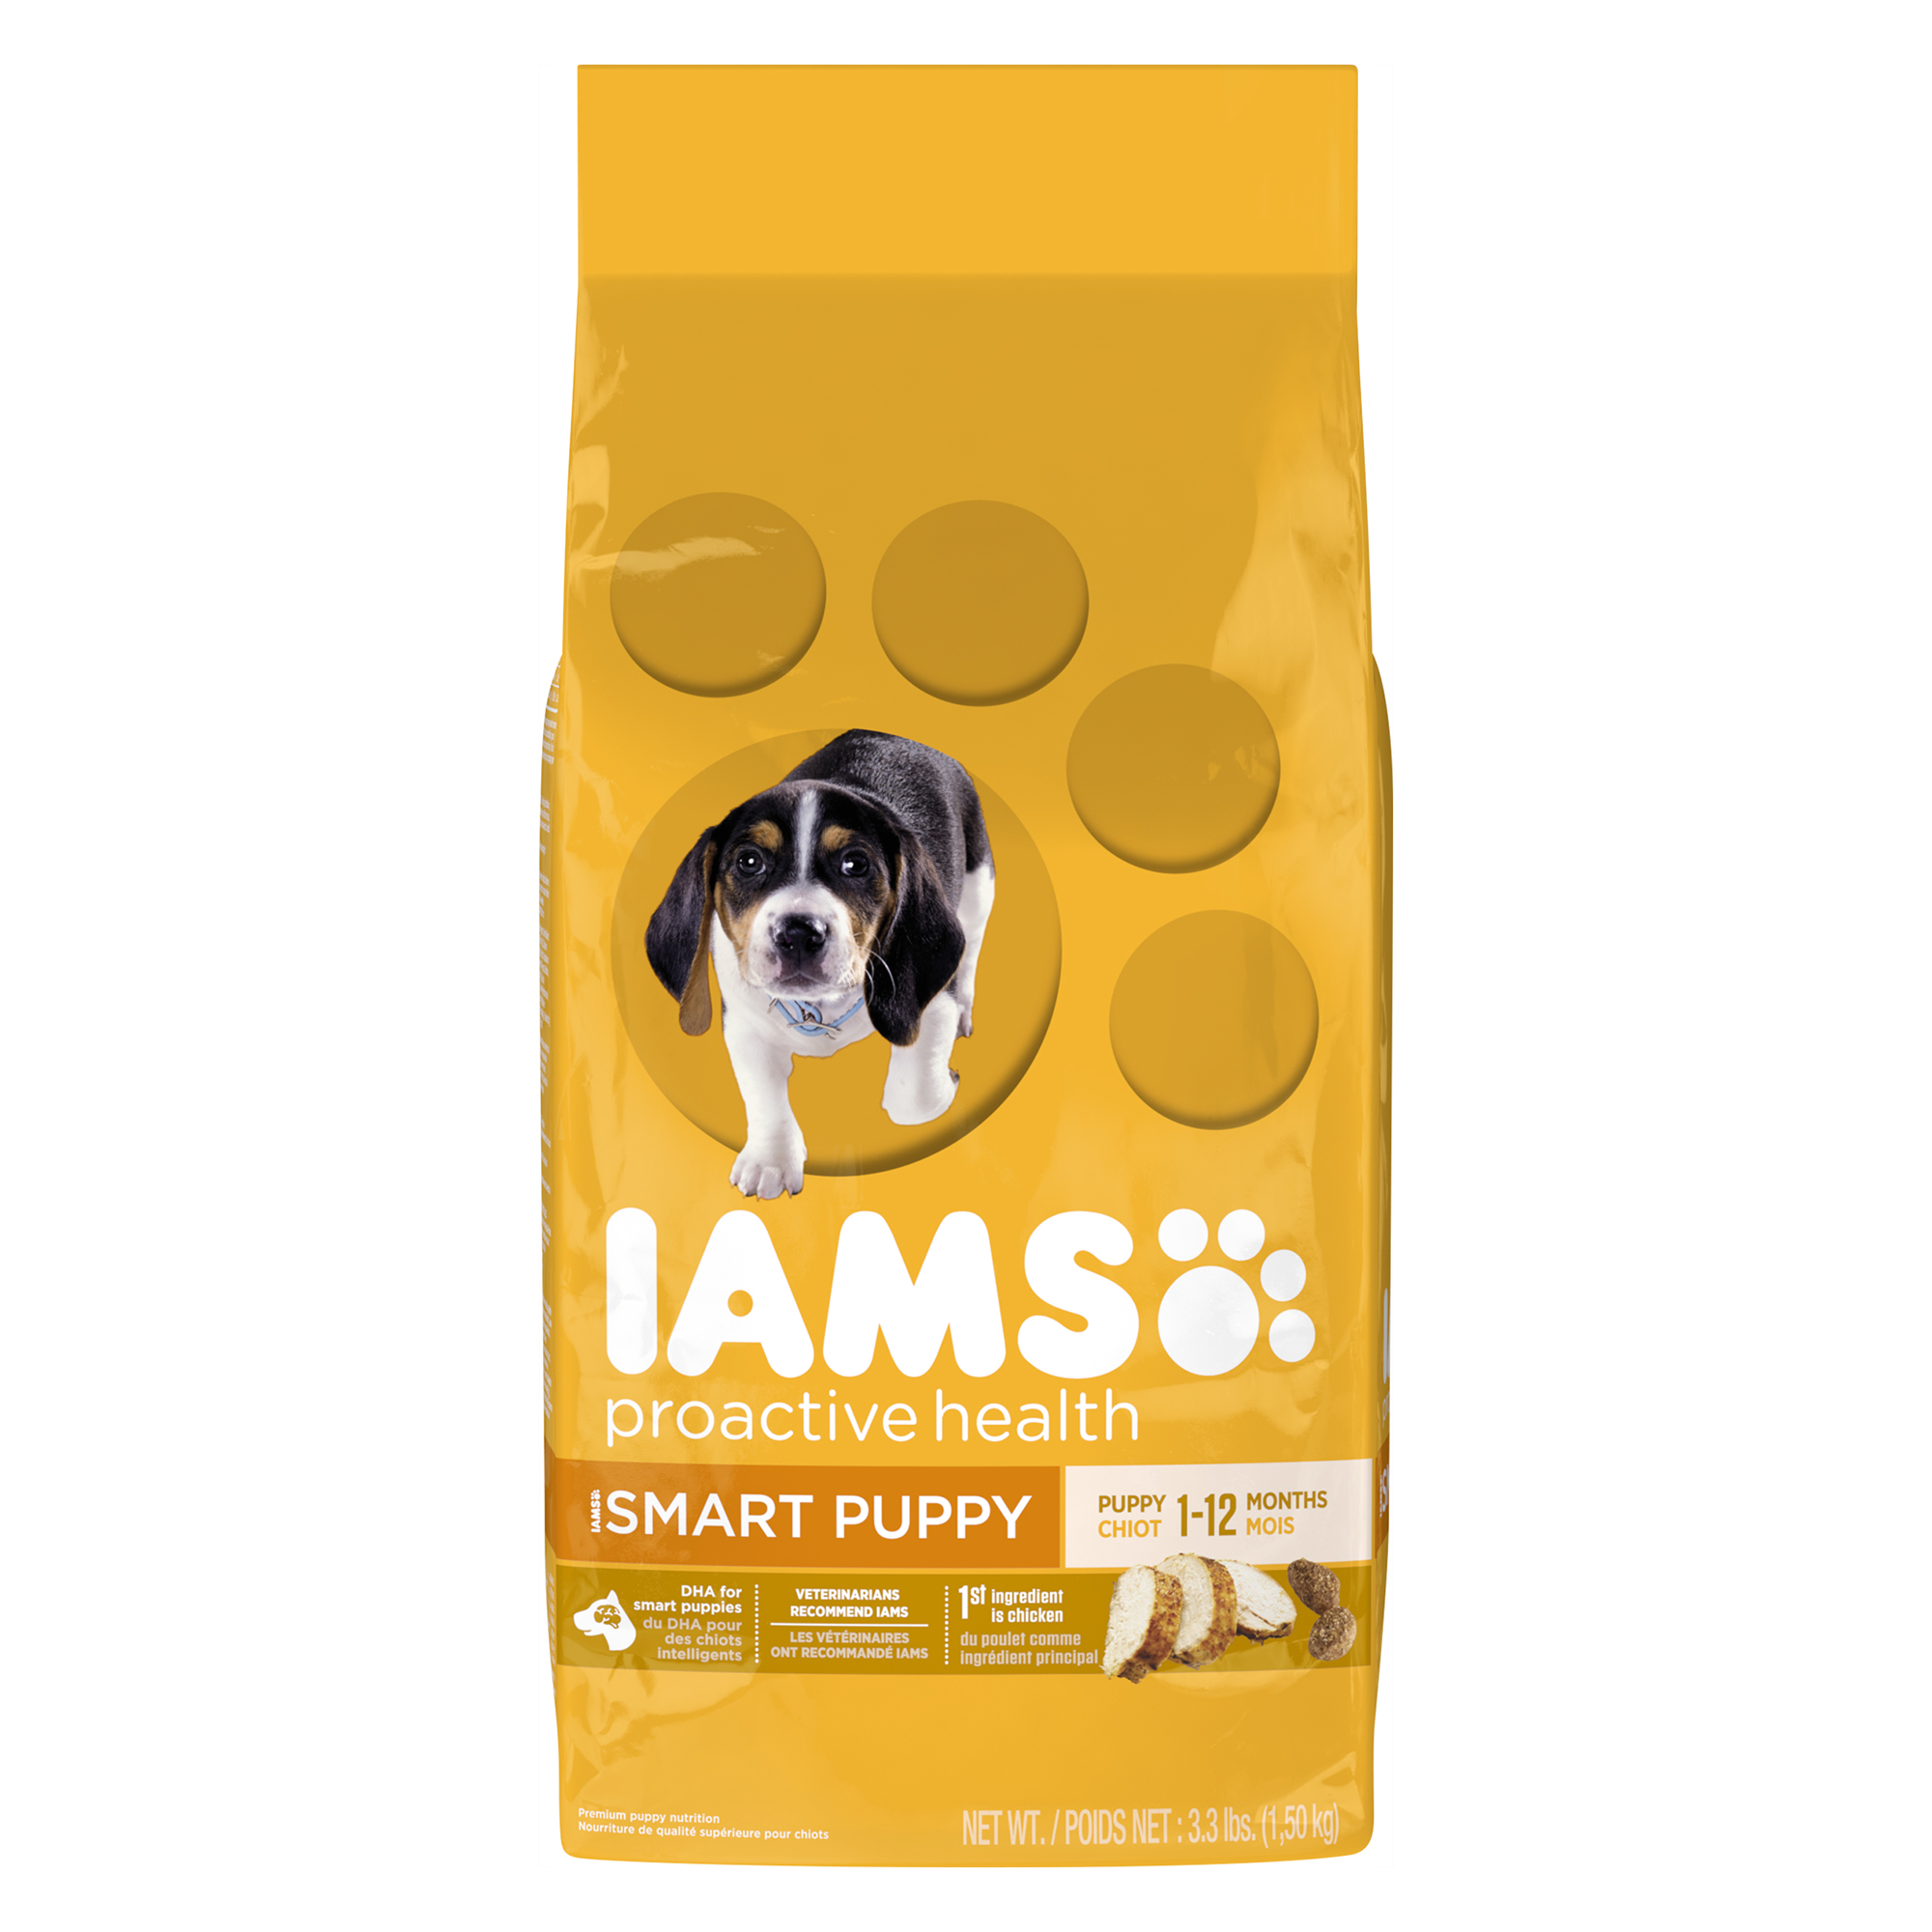 IAMS PROACTIVE HEALTH Smart Puppy Dry Puppy Food 3.3 Pounds